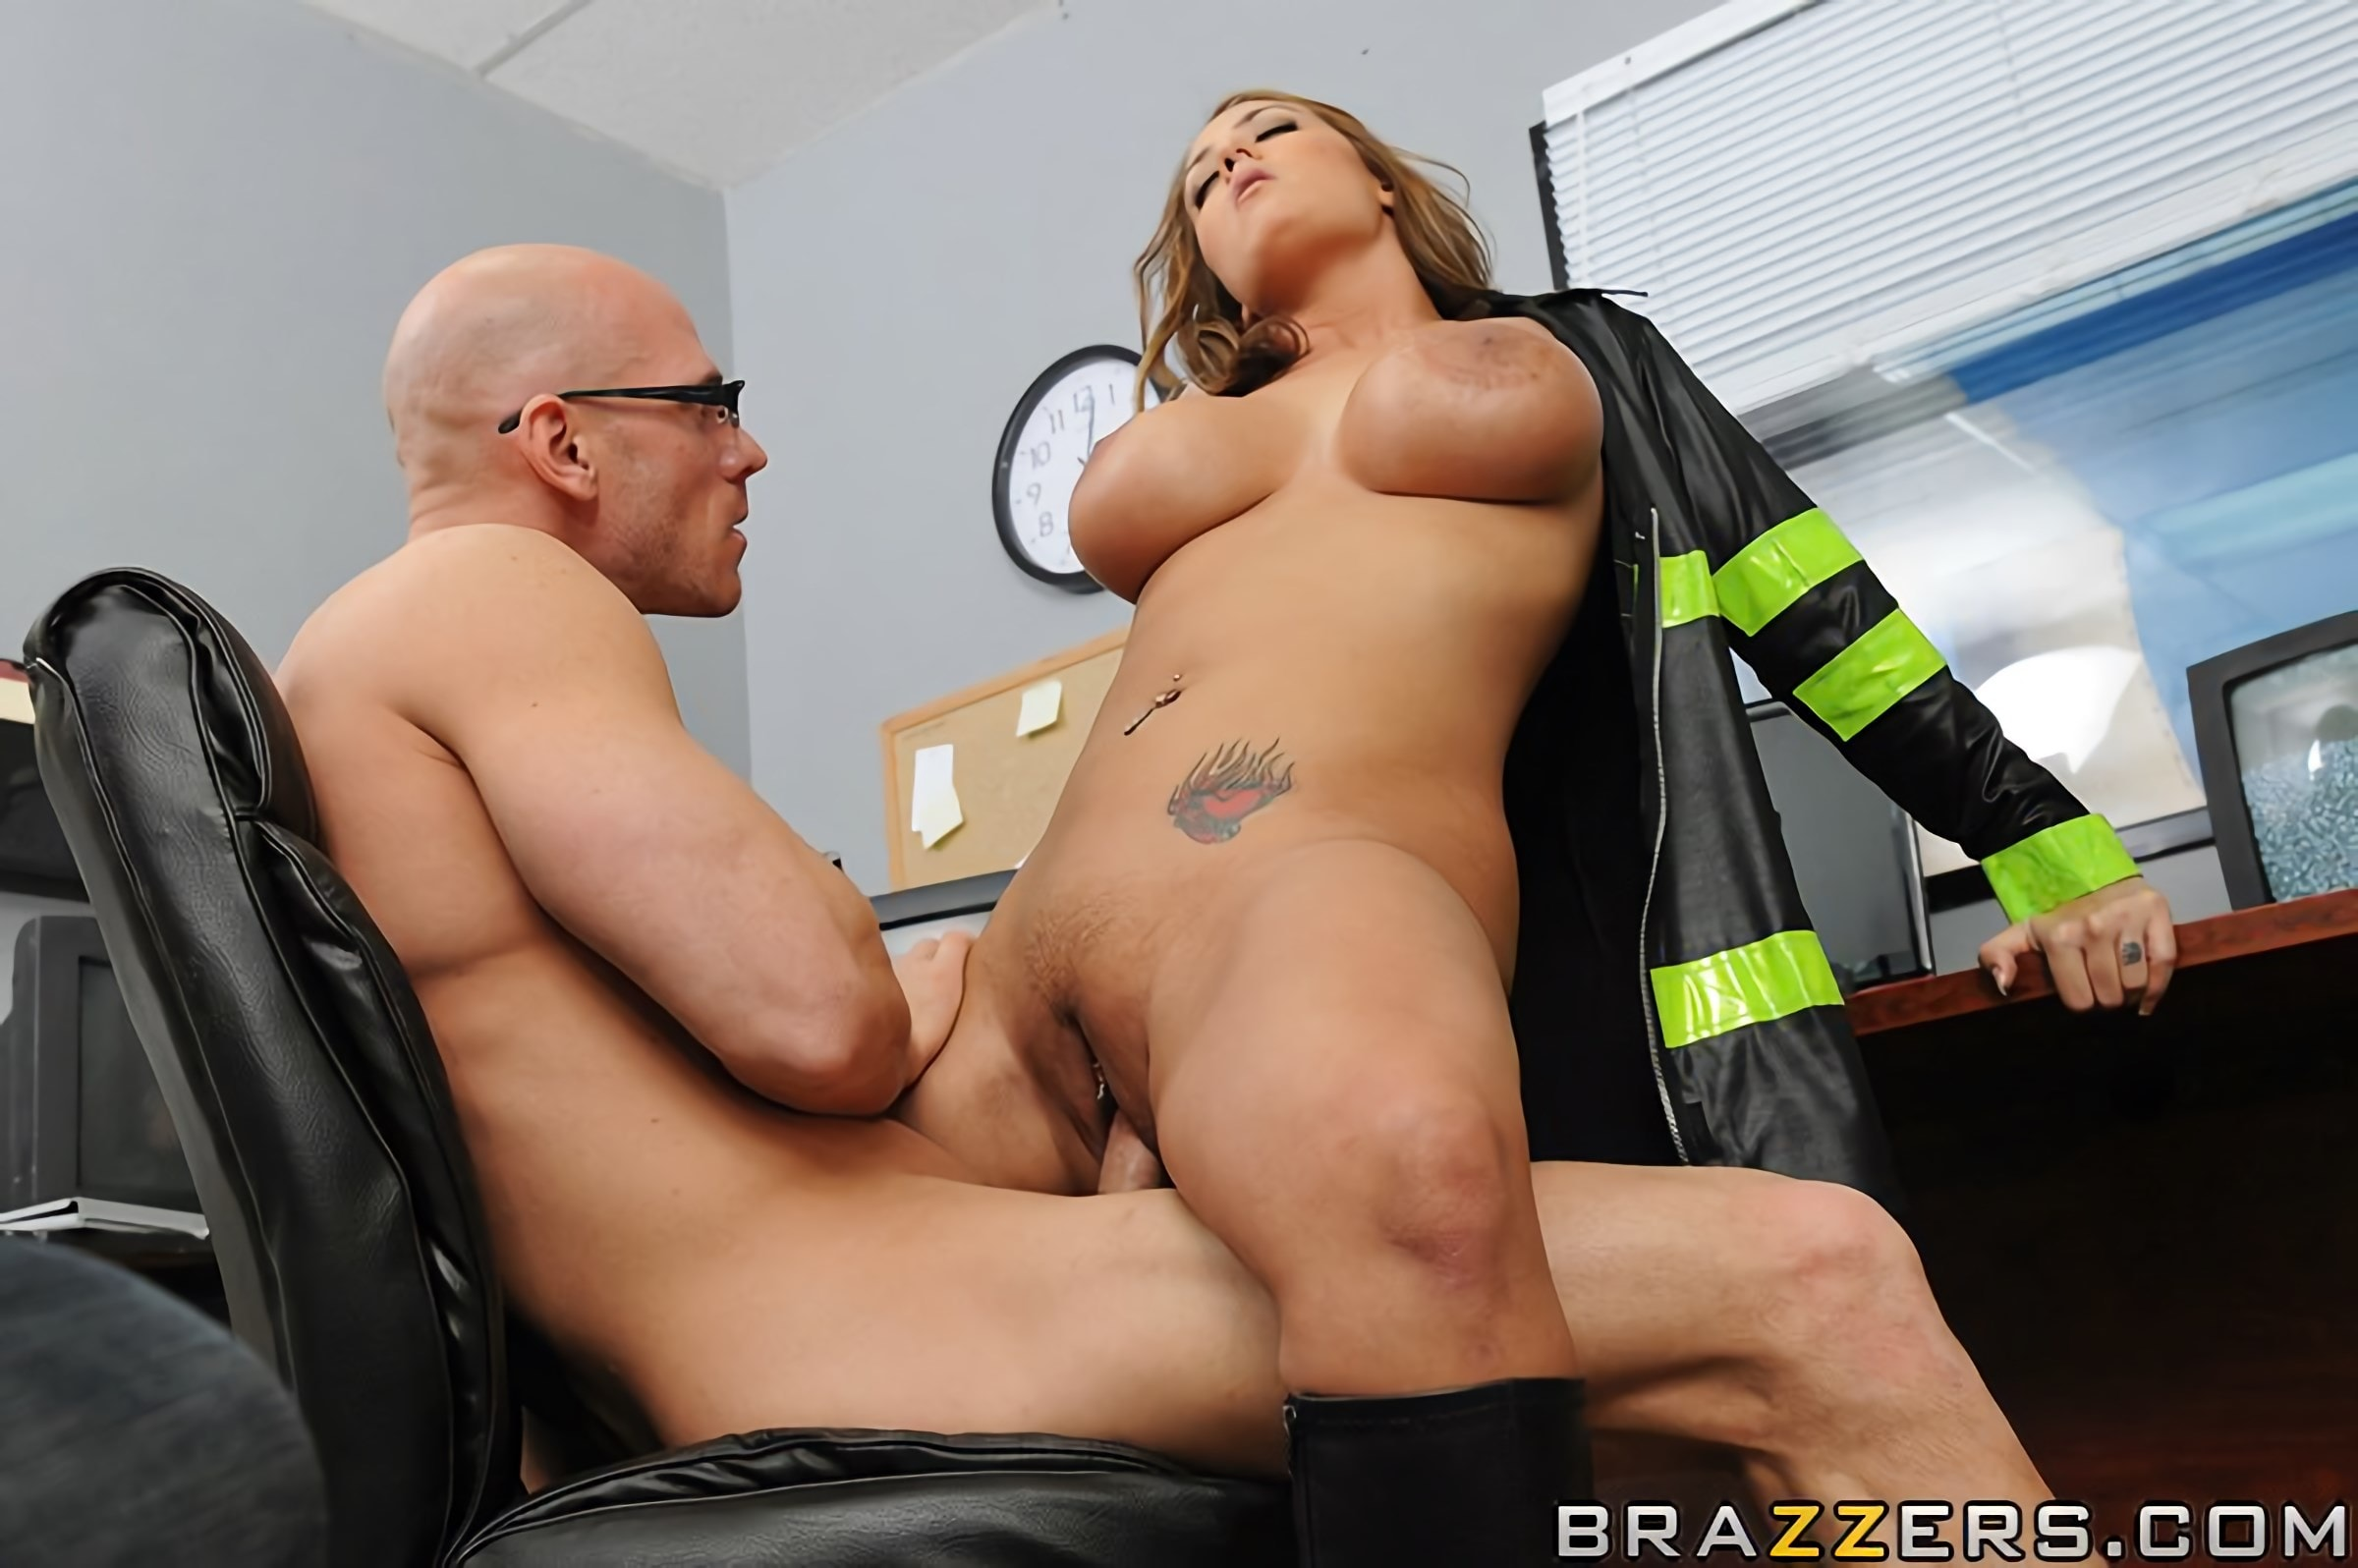 Brazzers 'Nuclear Tits' starring Trina Michaels (Photo 14)